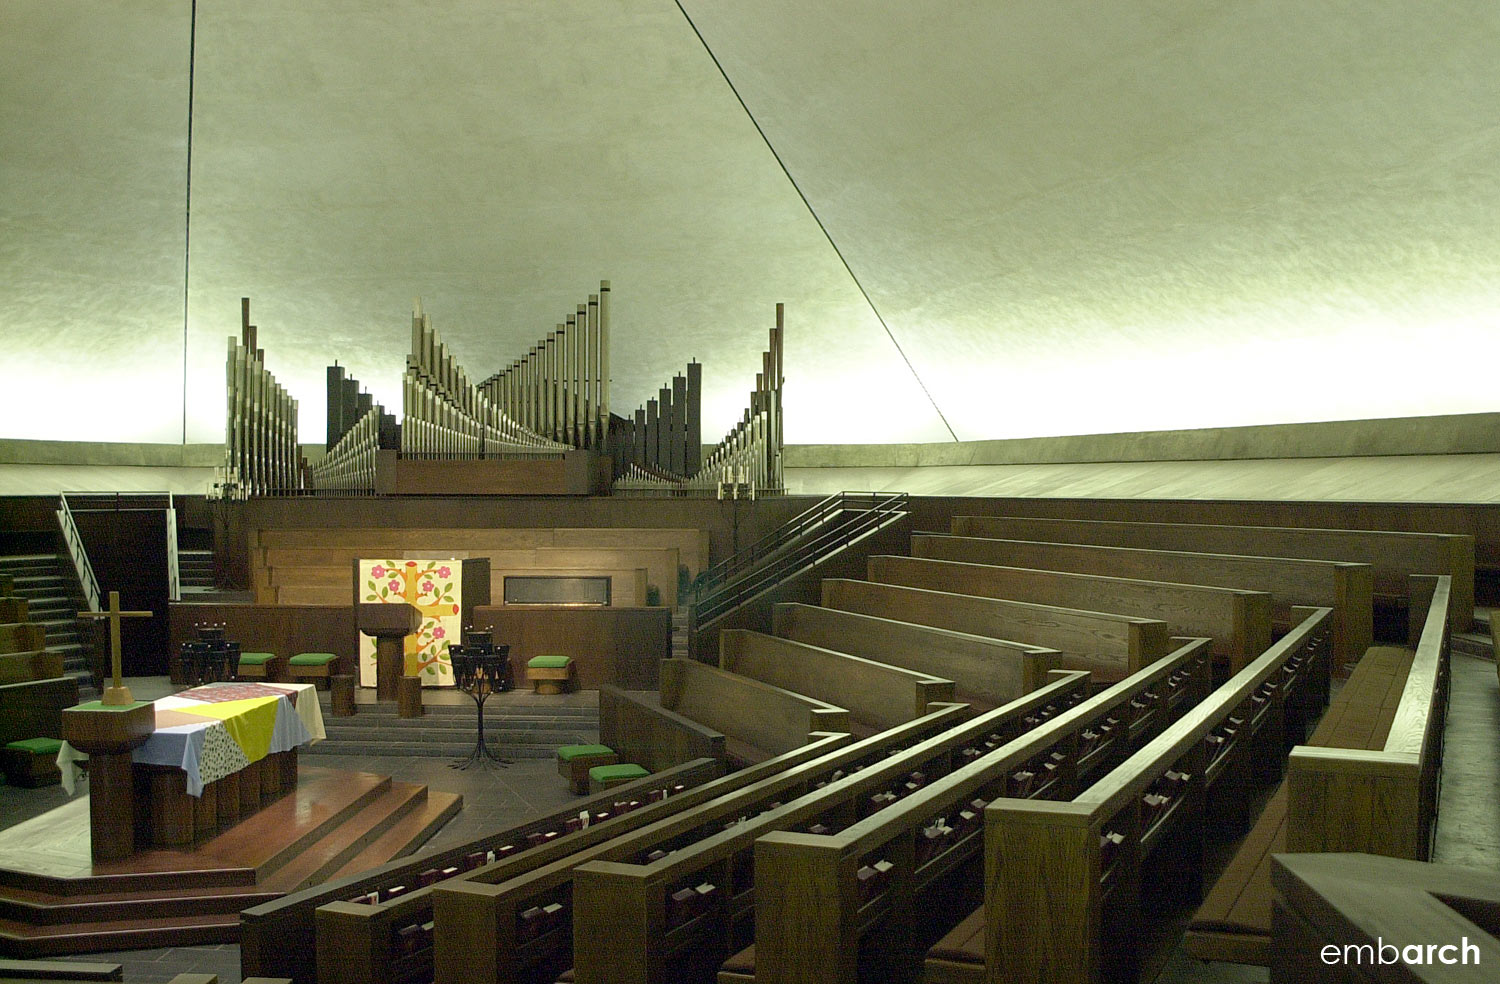 North Christian Church - view of interior